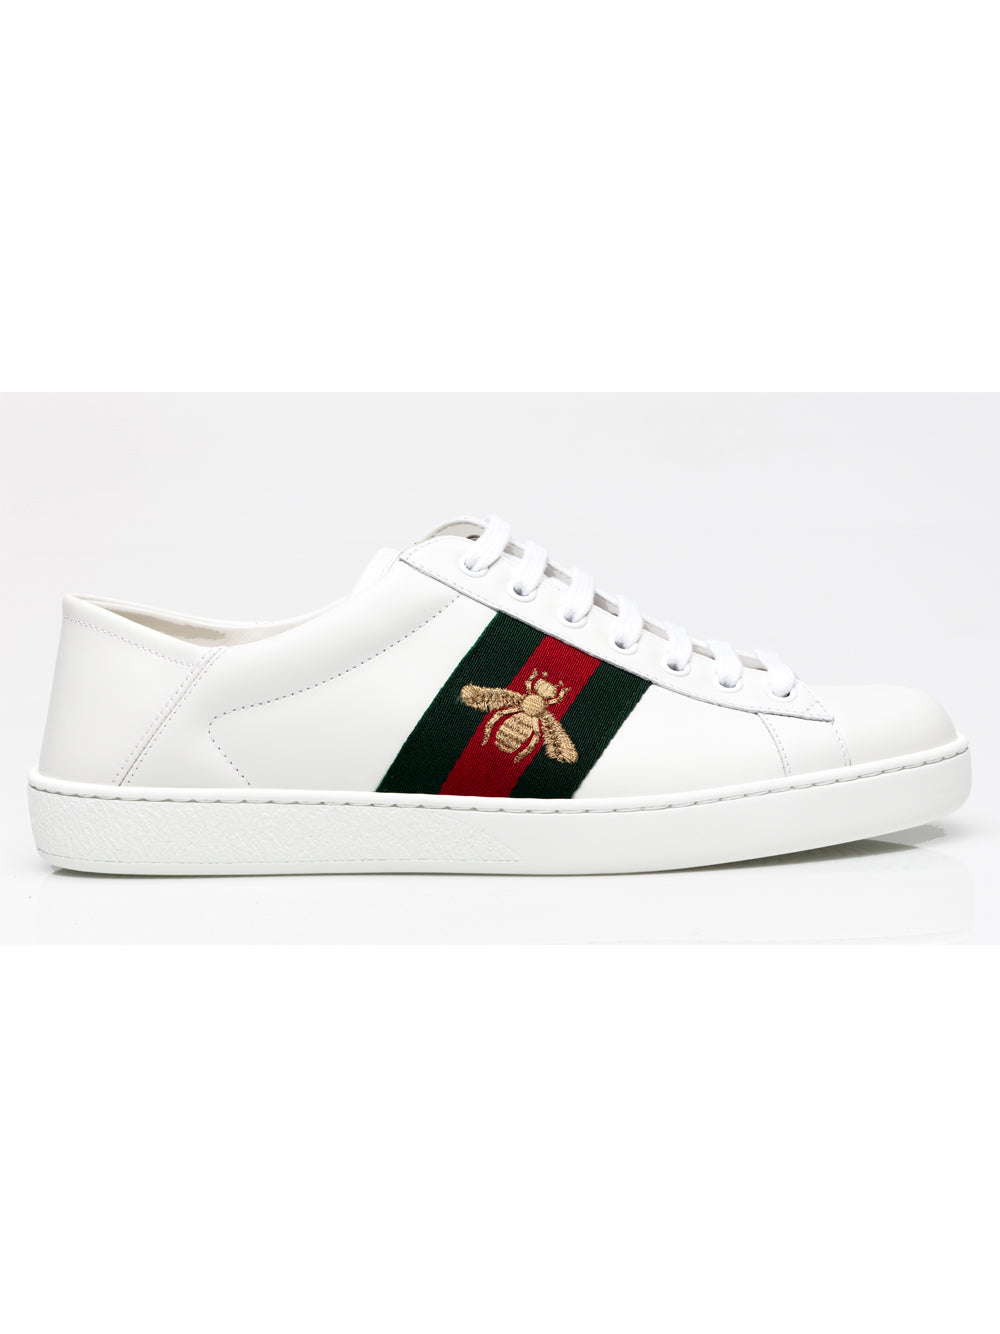 b4d9c6fa36bba Gucci Womens Ace Embroidered Bee Sneakers